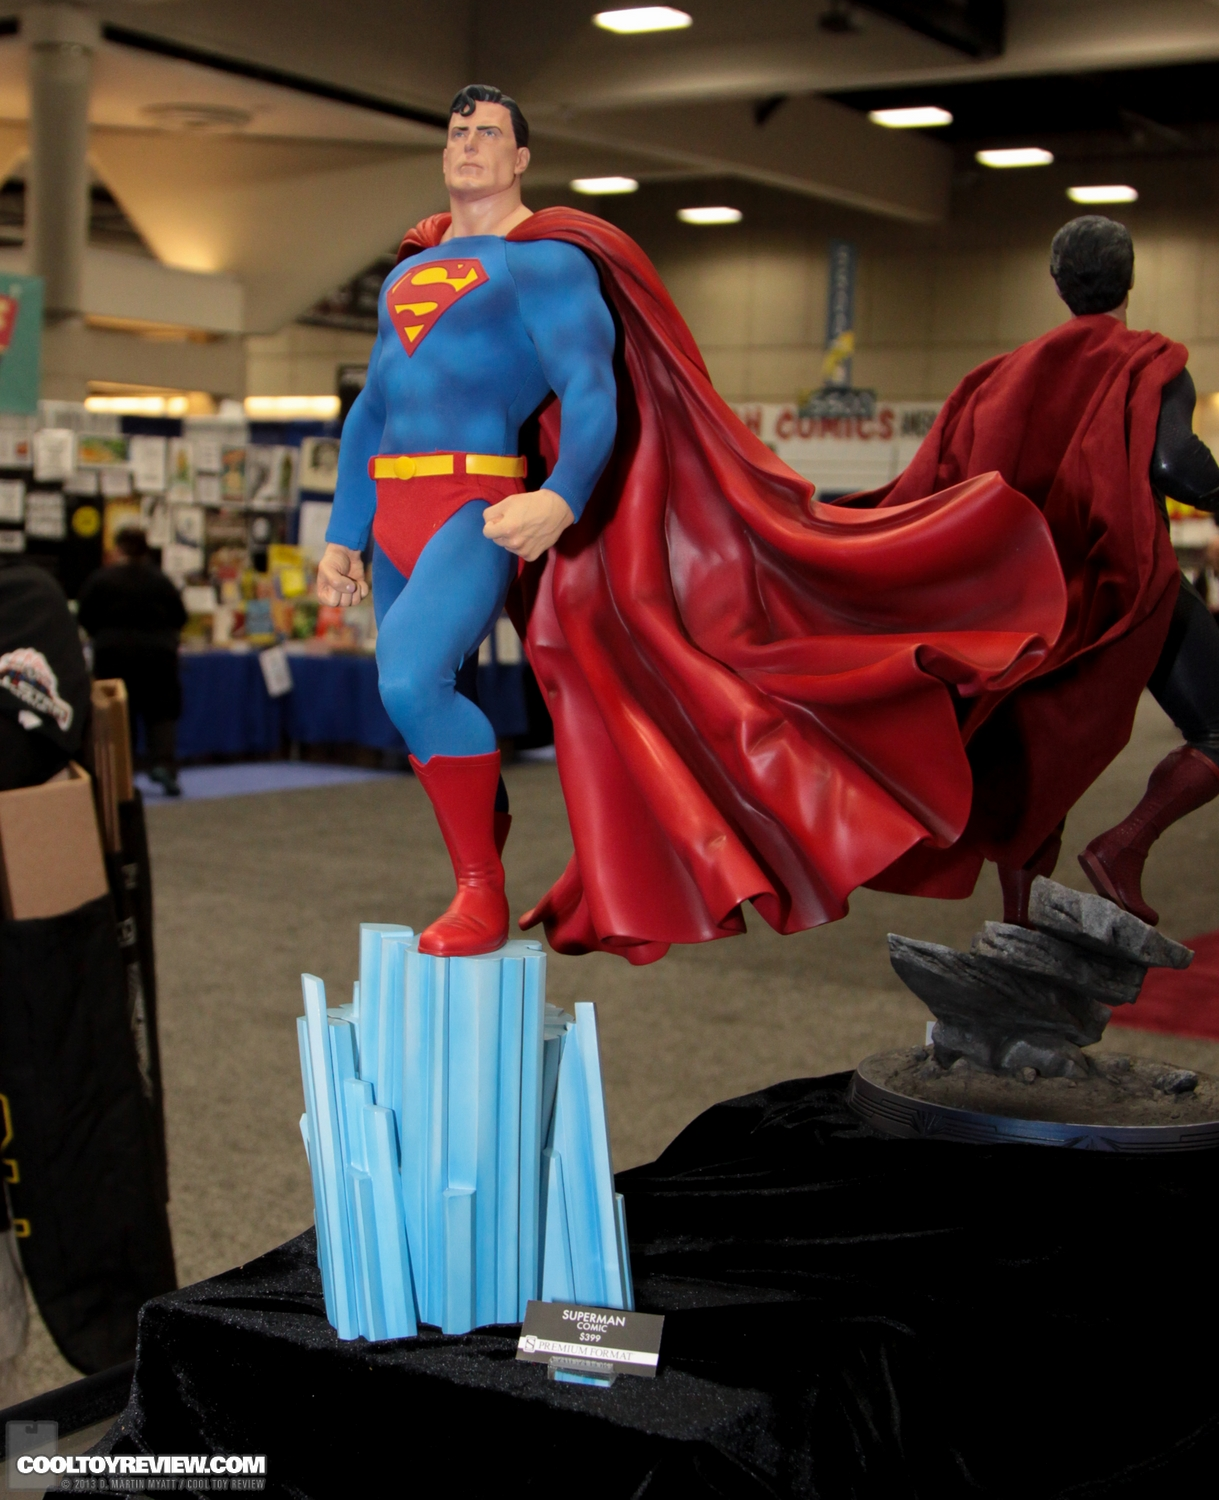 [Sideshow] Superman - Premium Format Figure - LANÇADO!!!! - Página 23 SDCC_2013_Sideshow_Collectibles_Thursday-074